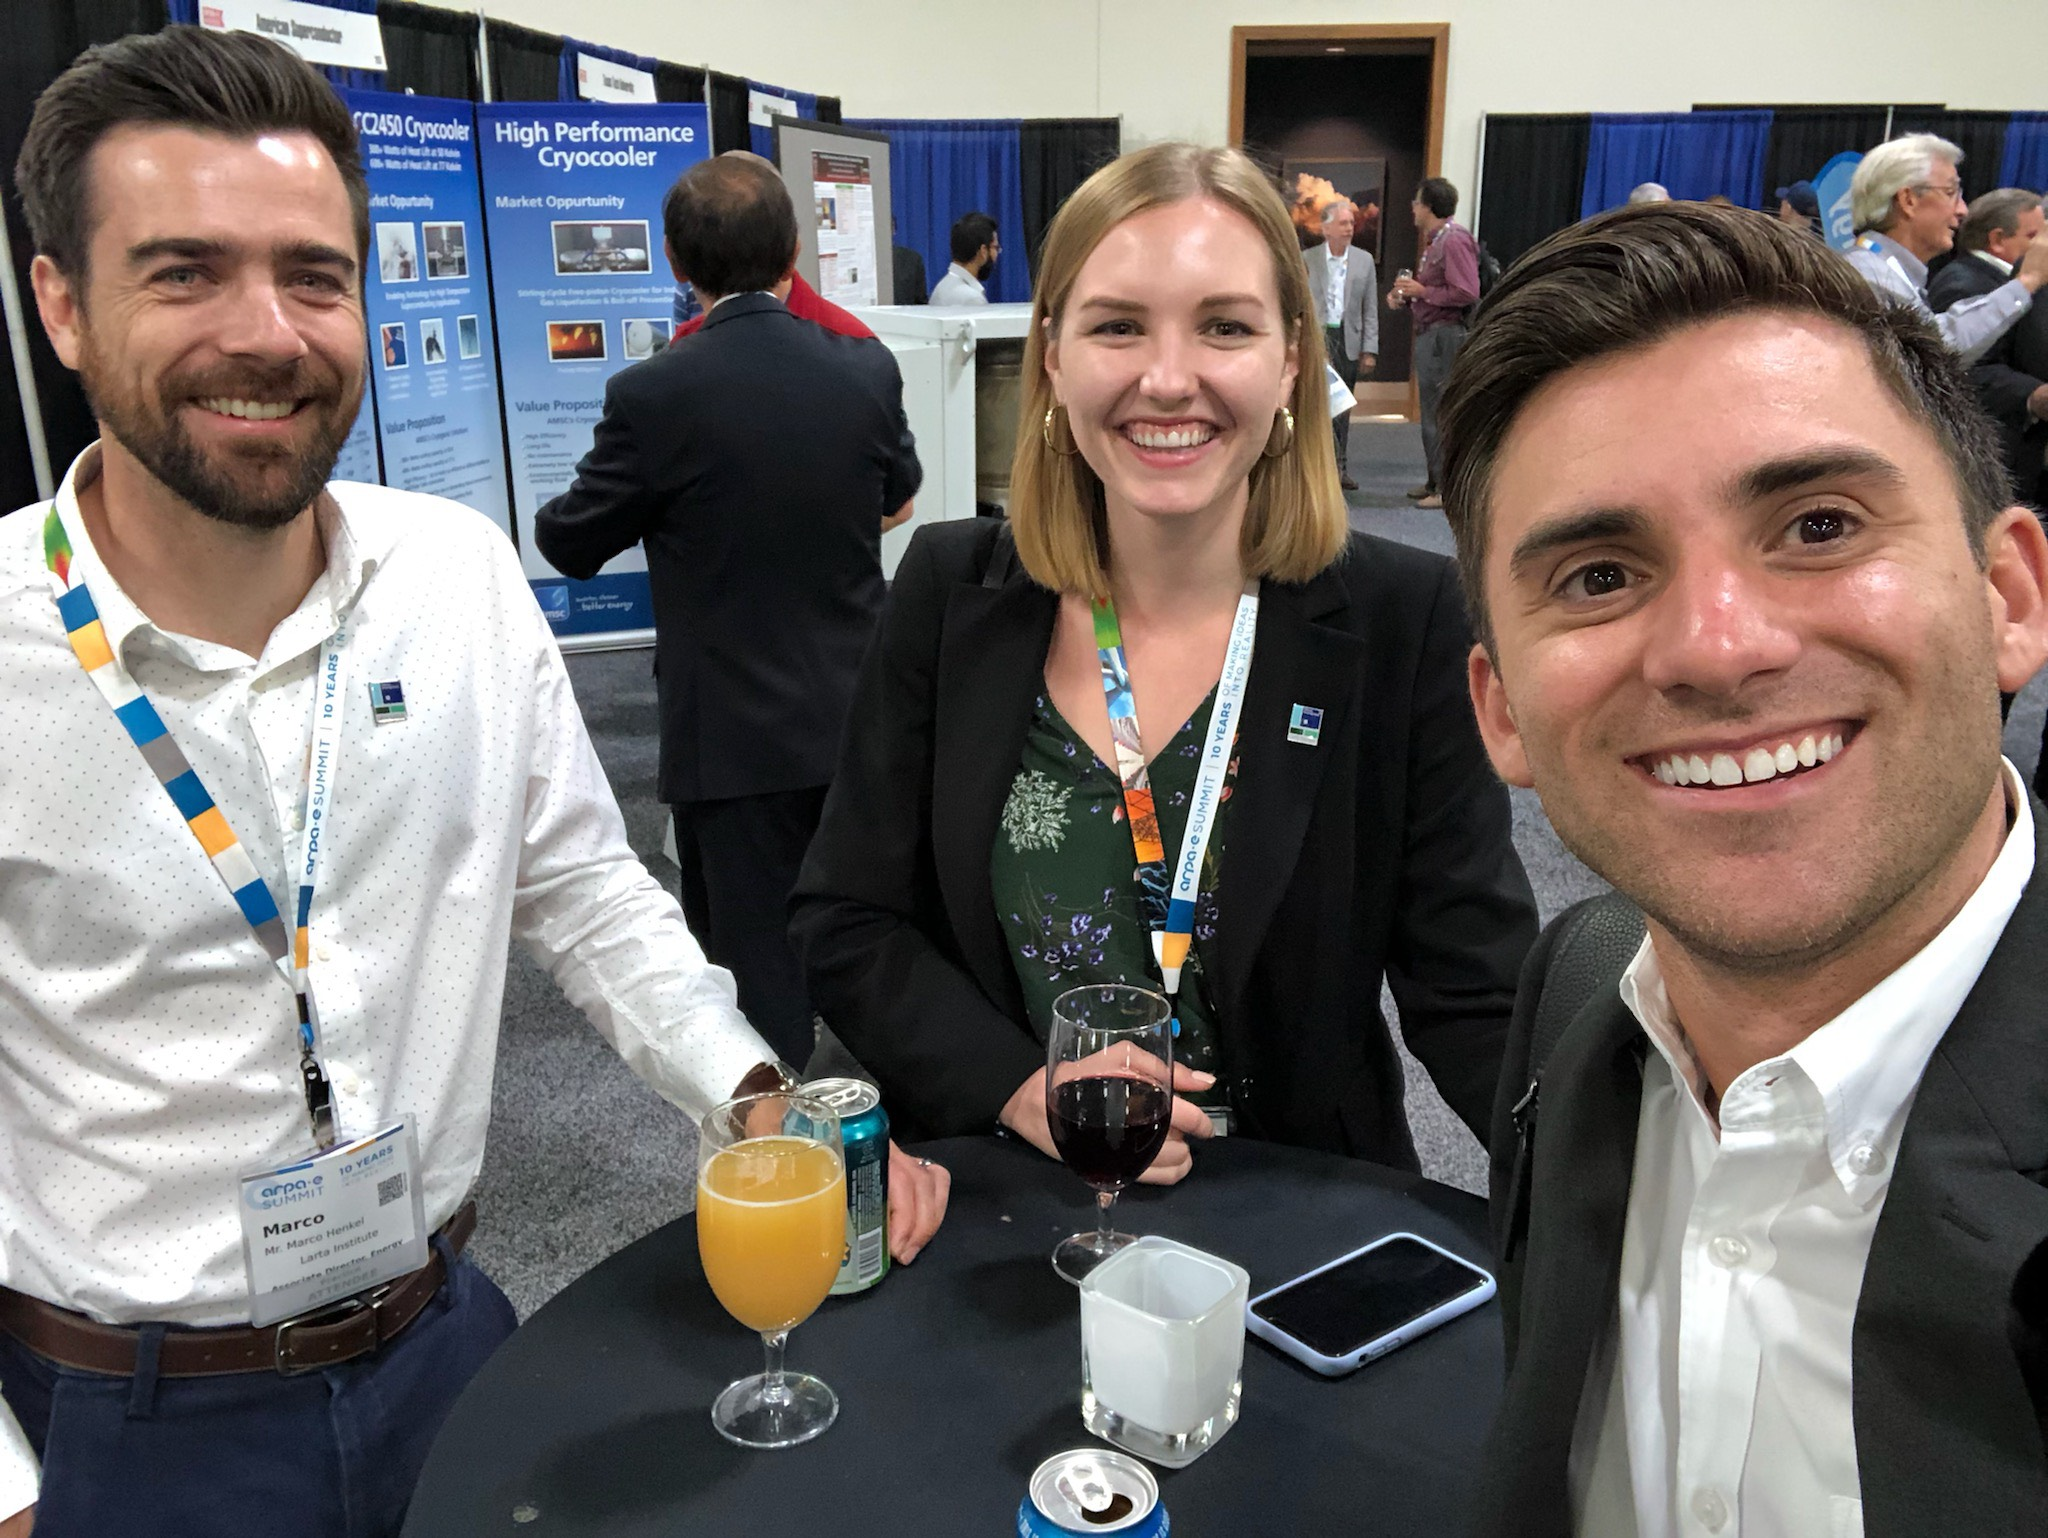 Left to right: Marco Henkel: Larta's Associate Director, Energy; Claire Anderson, Larta's Program Manager, Energy; Ryan RemingtonL Senior Business Developer at Jameson & Company, CPAs